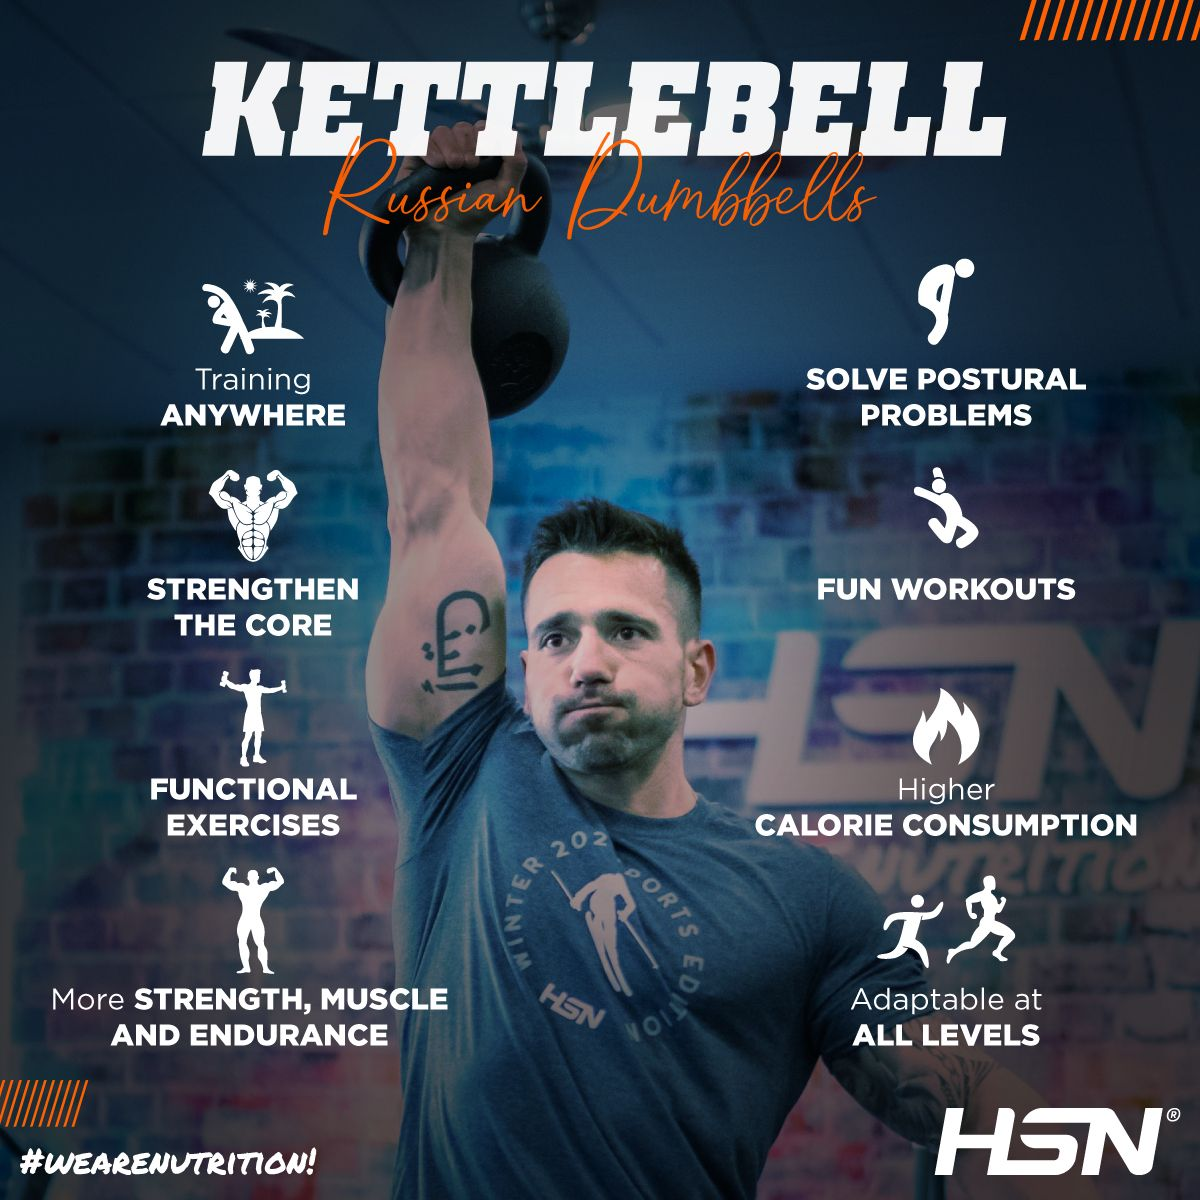 Go for it And try Kettlebells